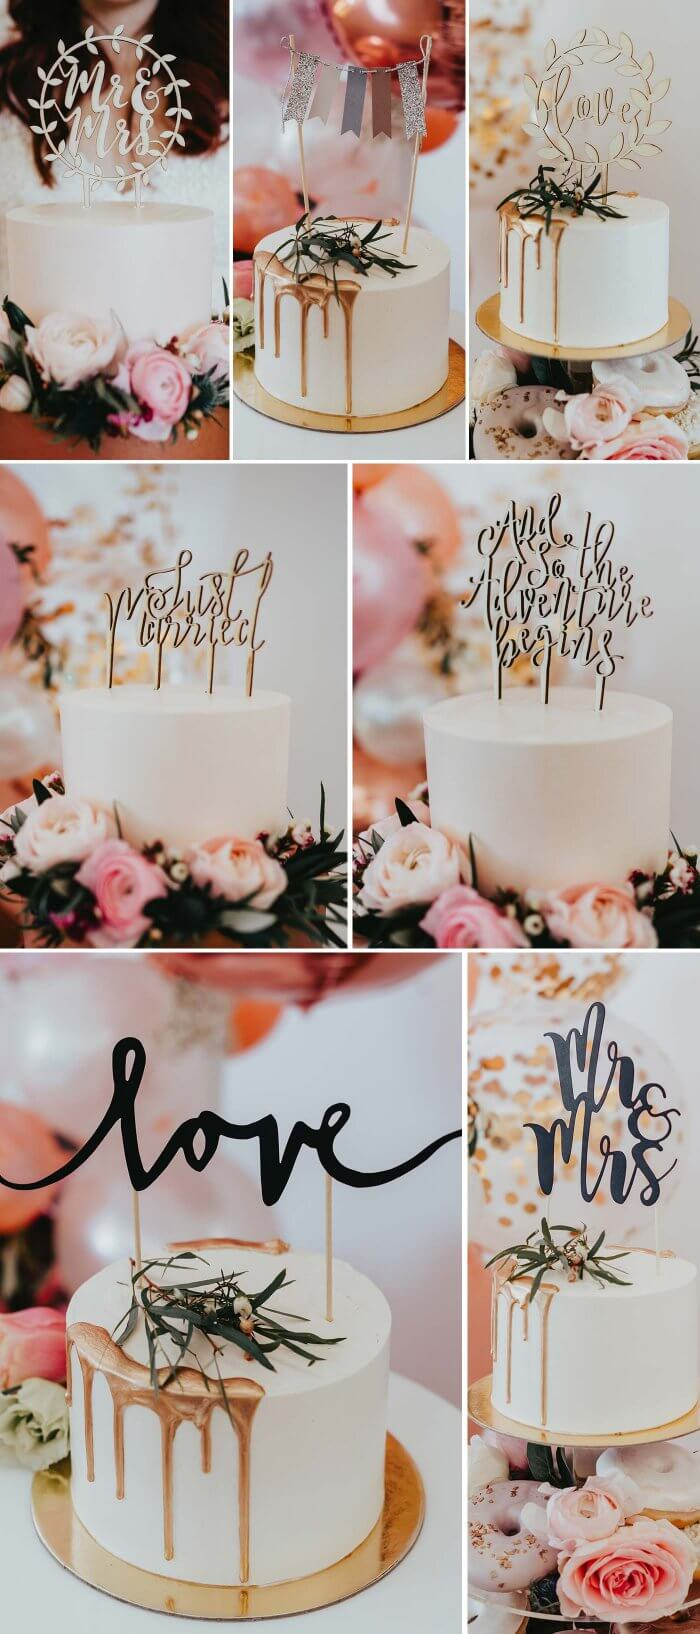 Cake Topper Trends